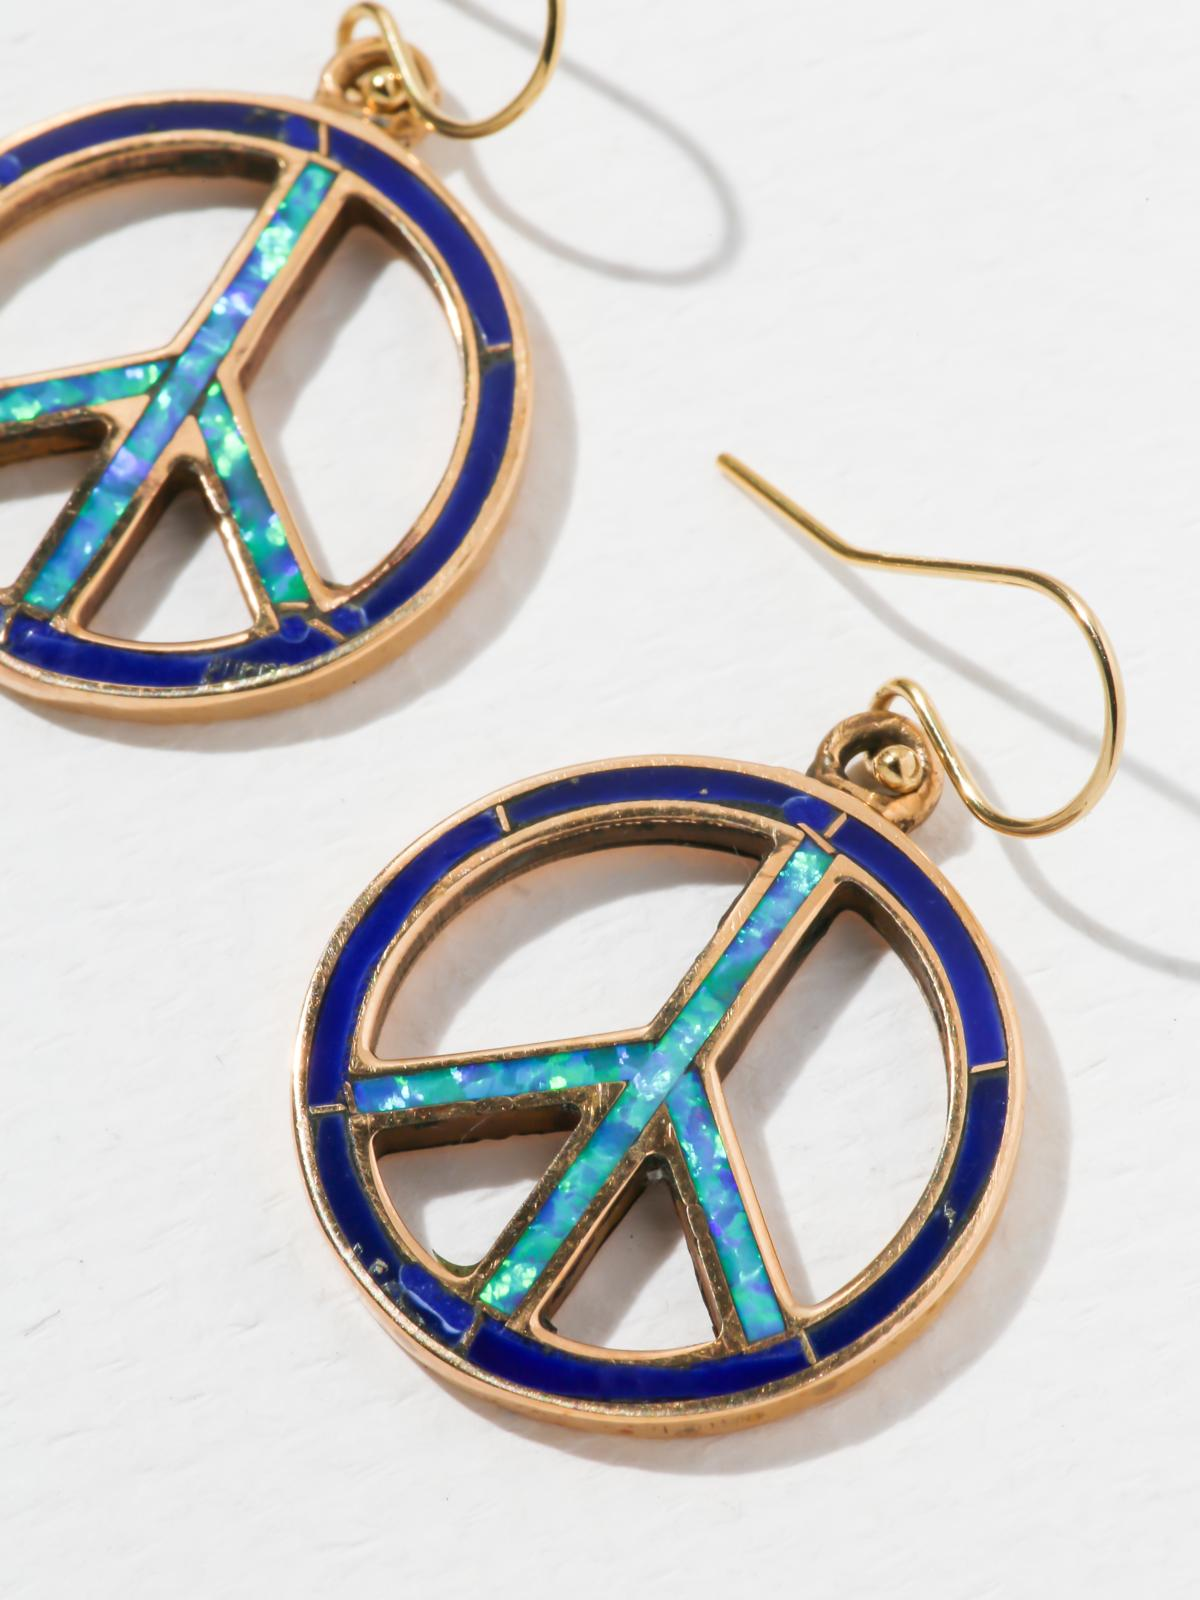 The Peace Earrings